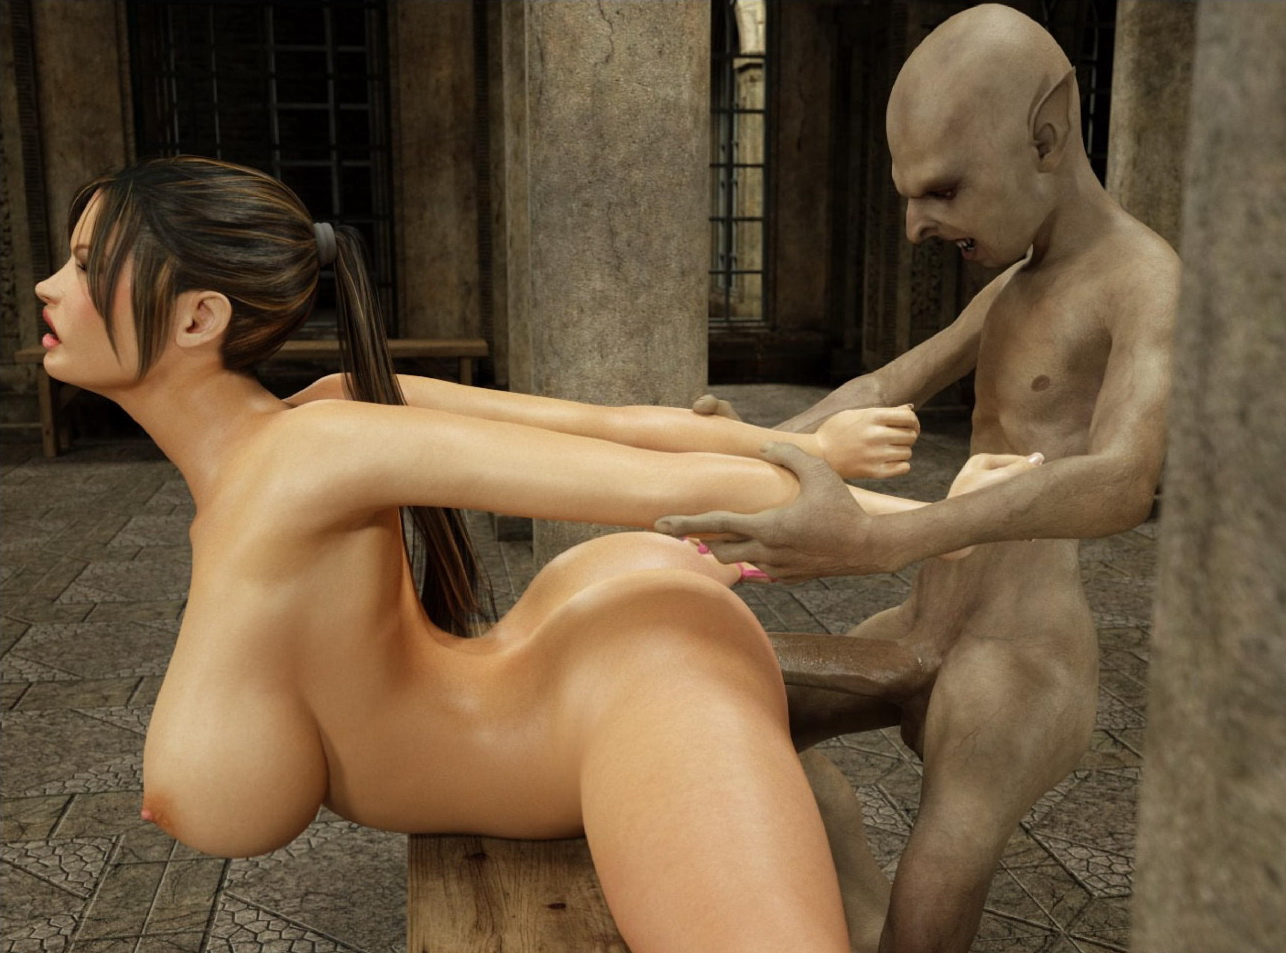 Lara croft fuck with goblin anime young pornstars